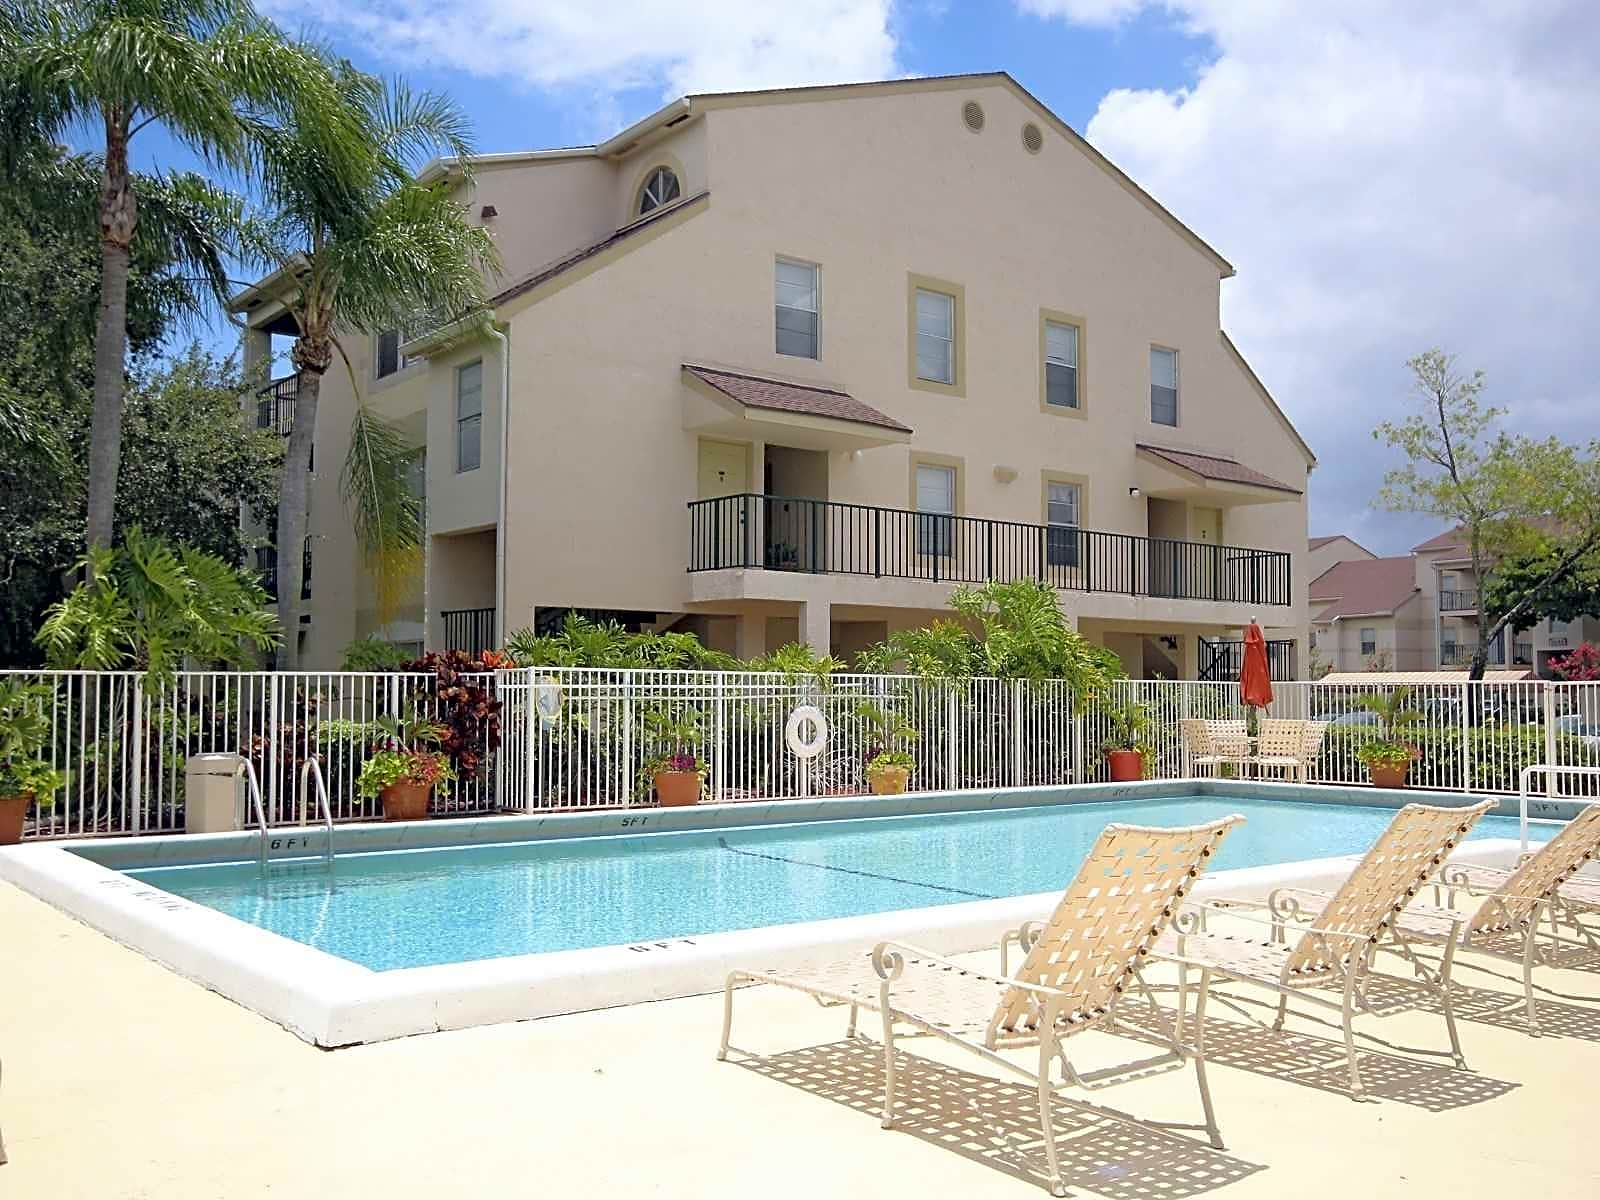 Awesome Boca Raton Fl Houses For Rent Apartments Page 9